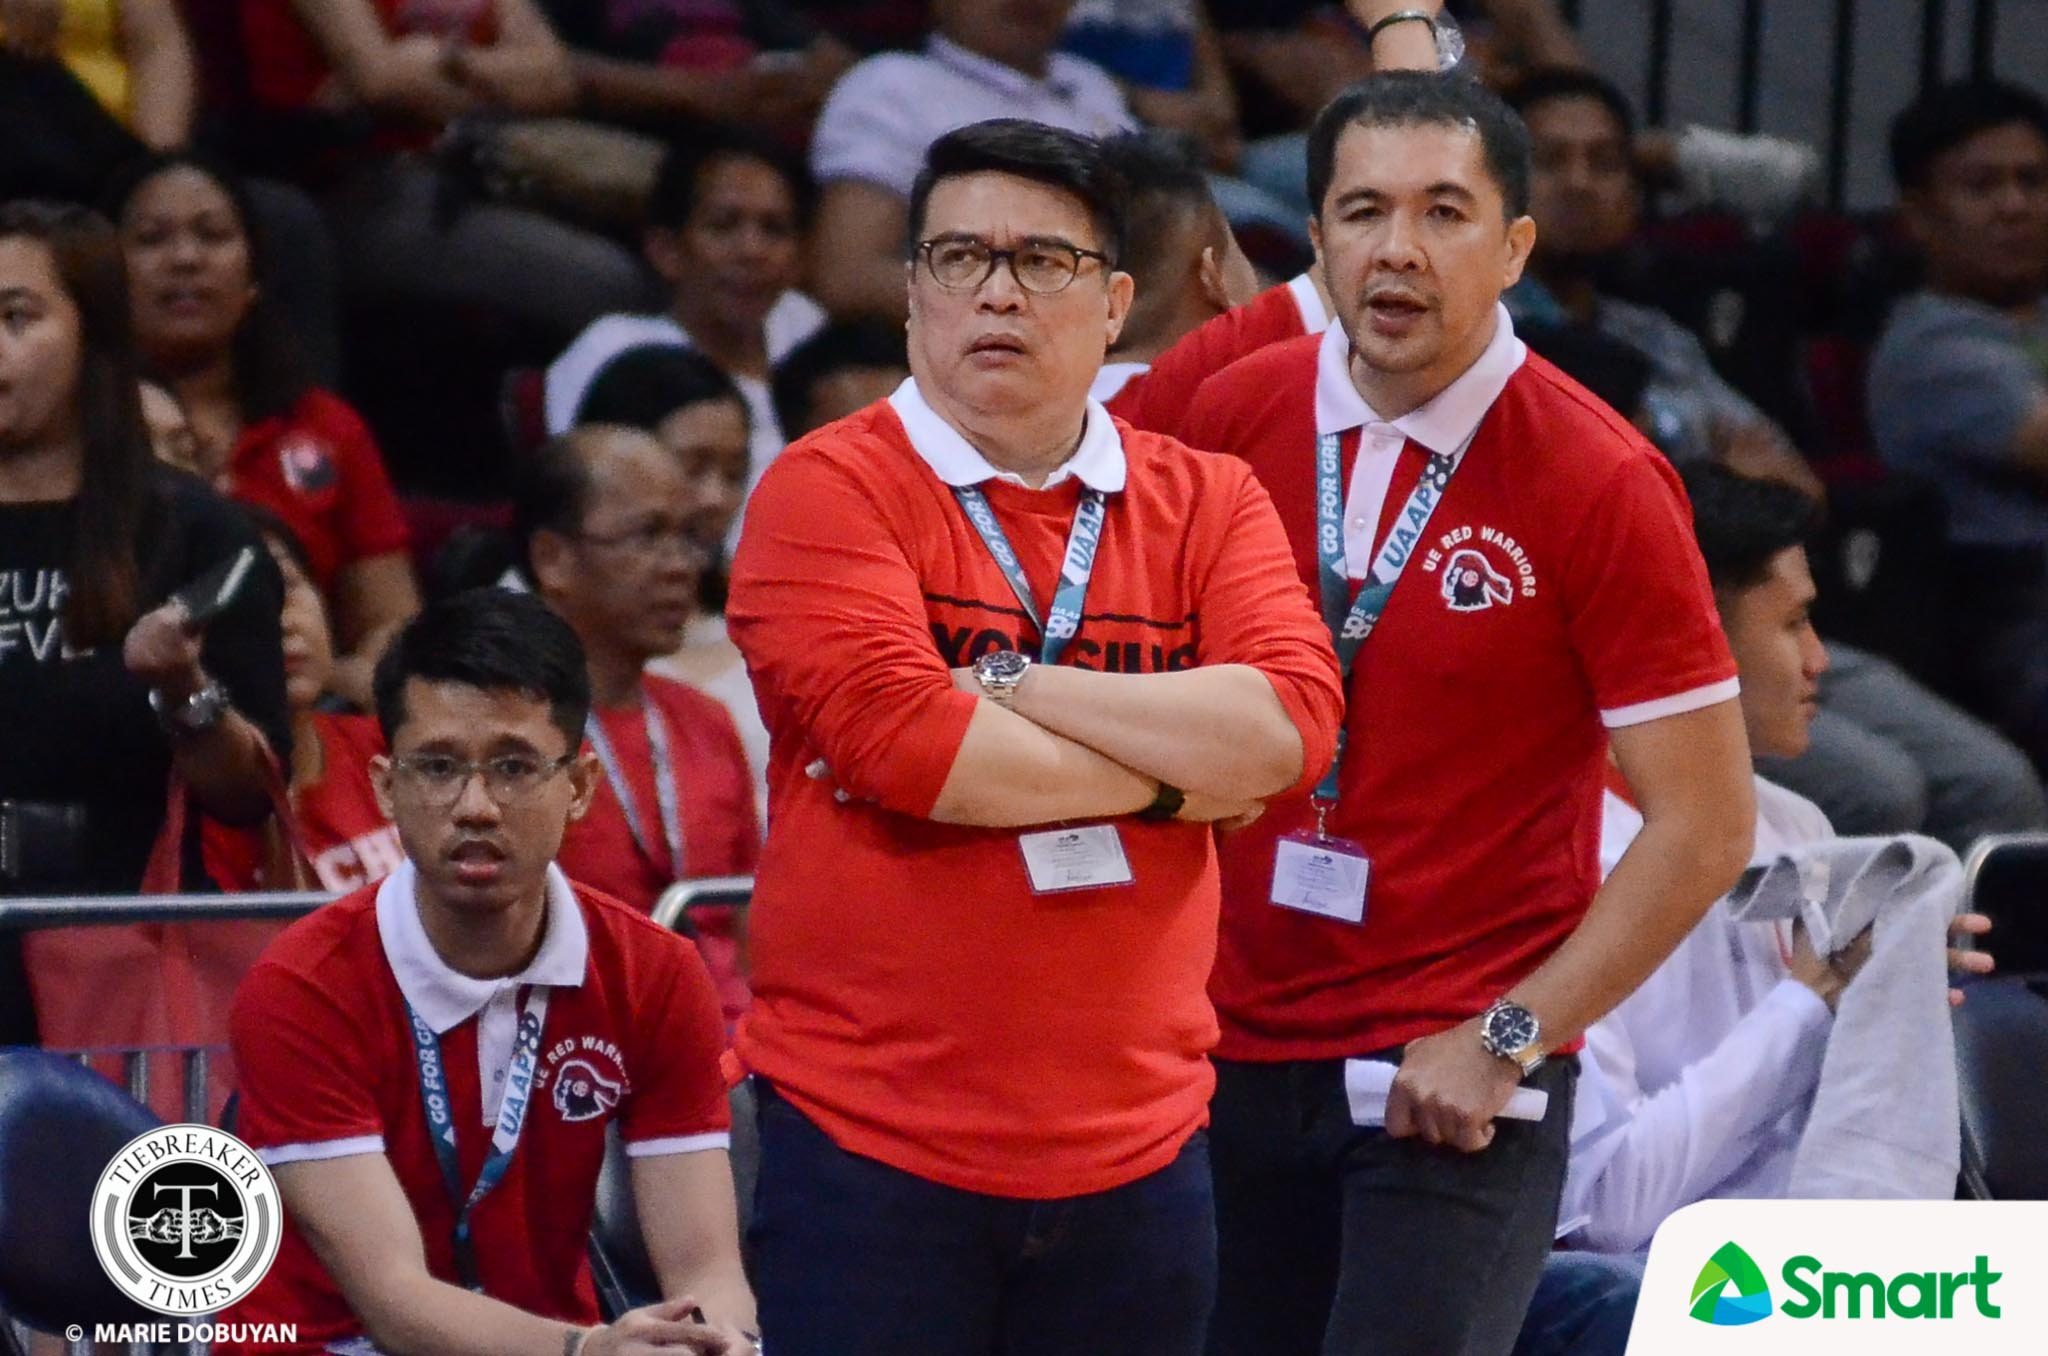 Philippine Sports News - Tiebreaker Times Derrick Pumaren hopes UE's effort against La Salle carries over in 'Finals' against UST Basketball News UAAP UE  UE Men's Basketball UAAP Season 80 Men's Basketball UAAP Season 80 Derrick Pumaren